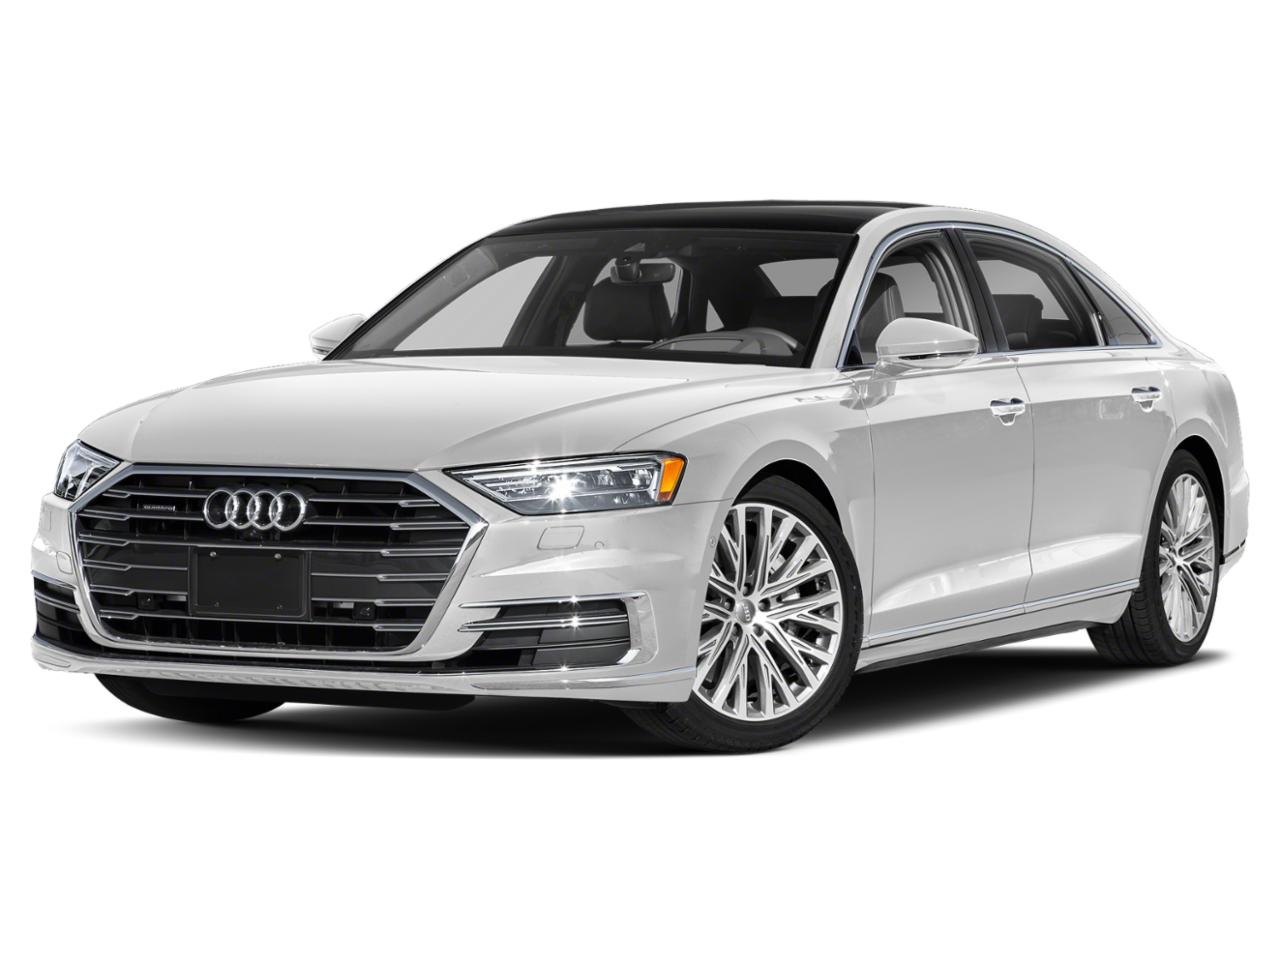 2021 Audi A8 L Vehicle Photo in Sugar Land, TX 77478